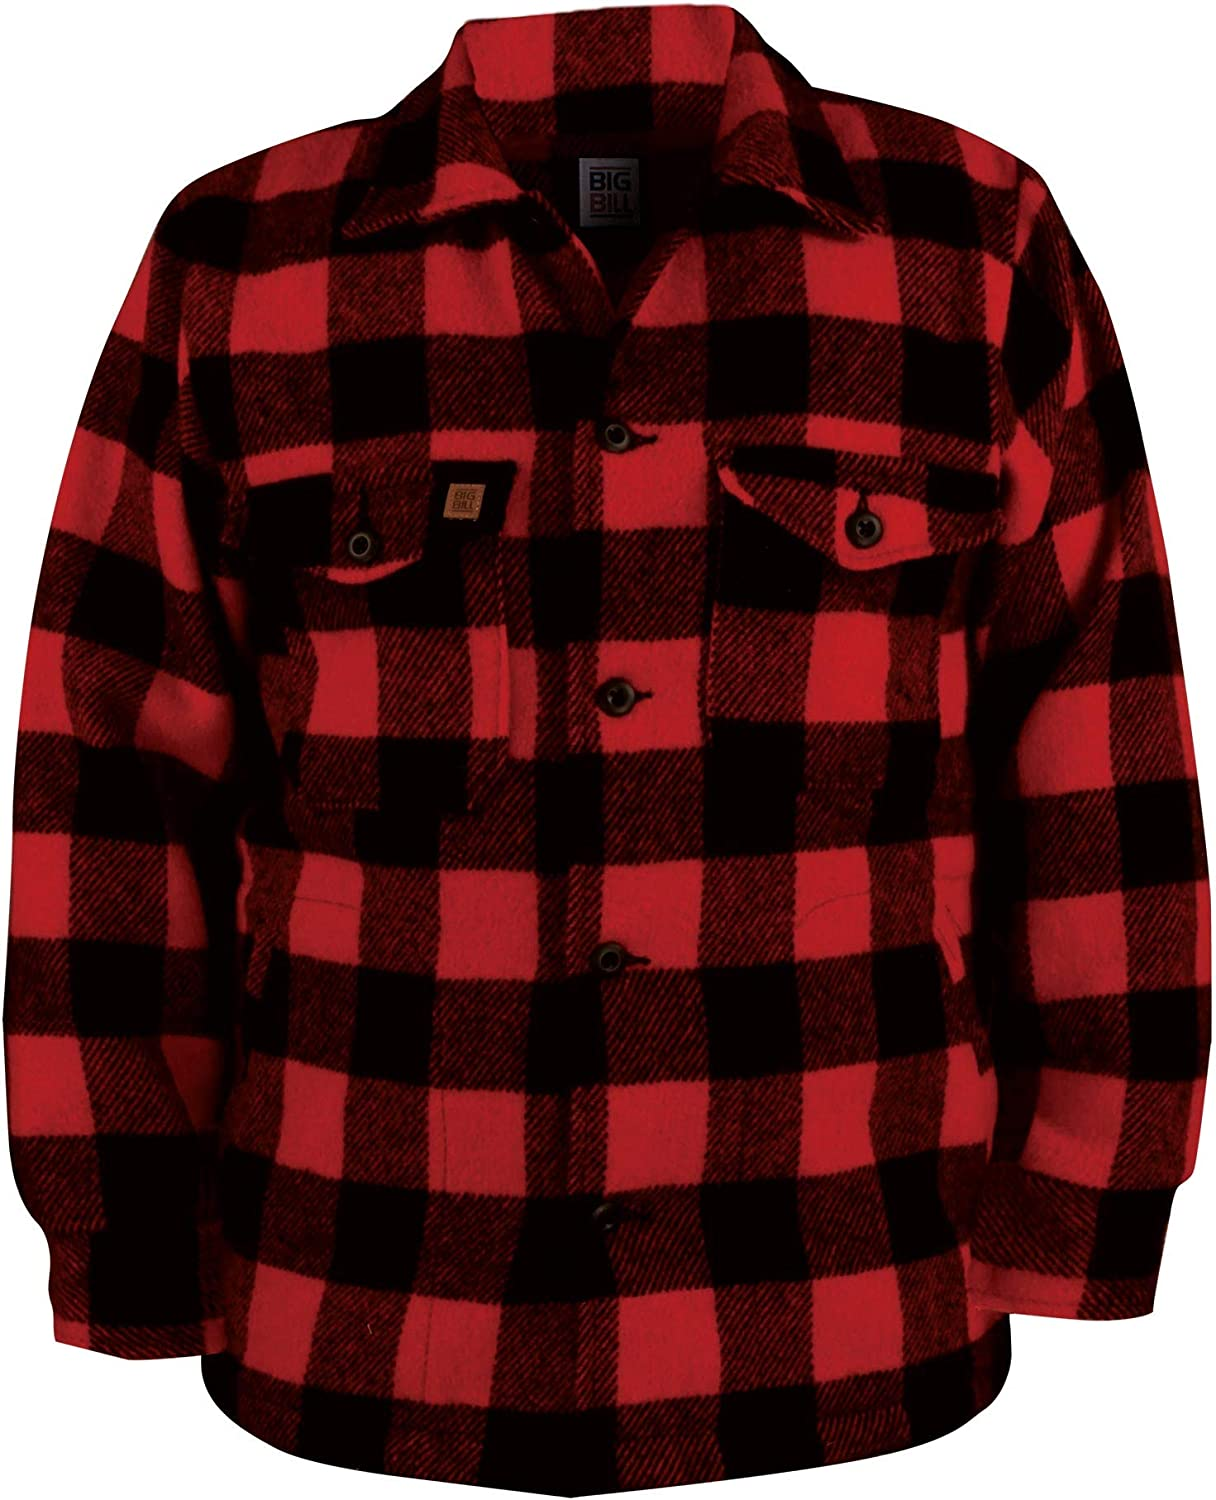 Regular Big and Tall Premium Wool Red Buffalo Coat for Outdoor, Hunting and Shooting Wear to 5X Made in Canada